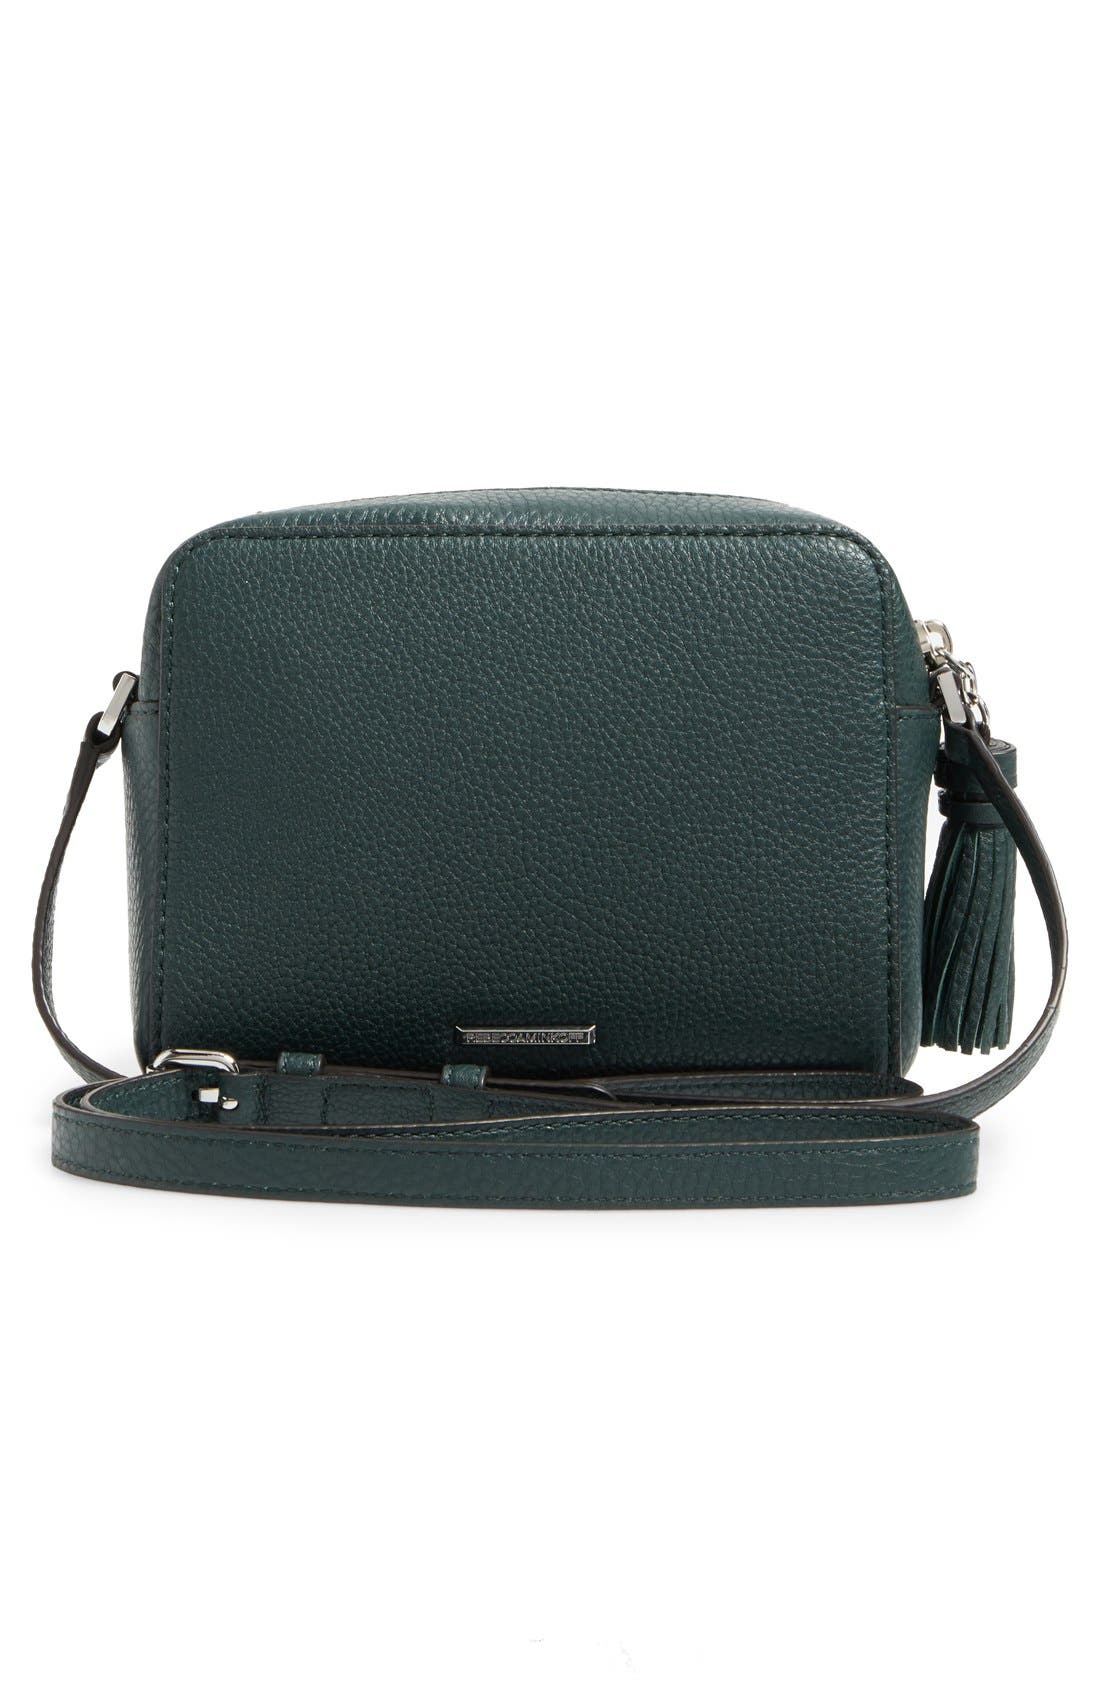 Alternate Image 3  - Rebecca Minkoff MAB Camera Bag